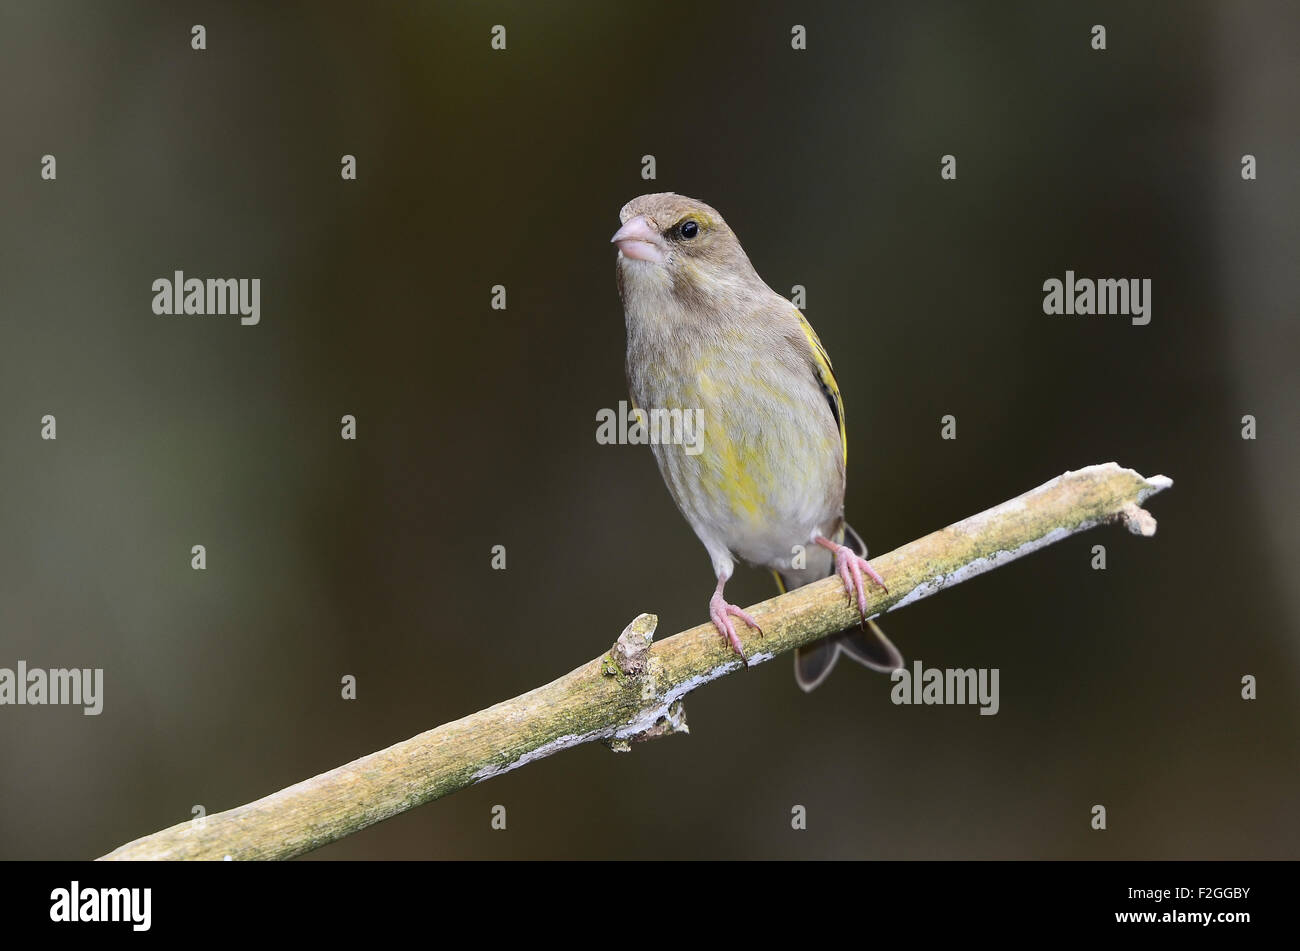 One greenfinch on a twig UK - Stock Image